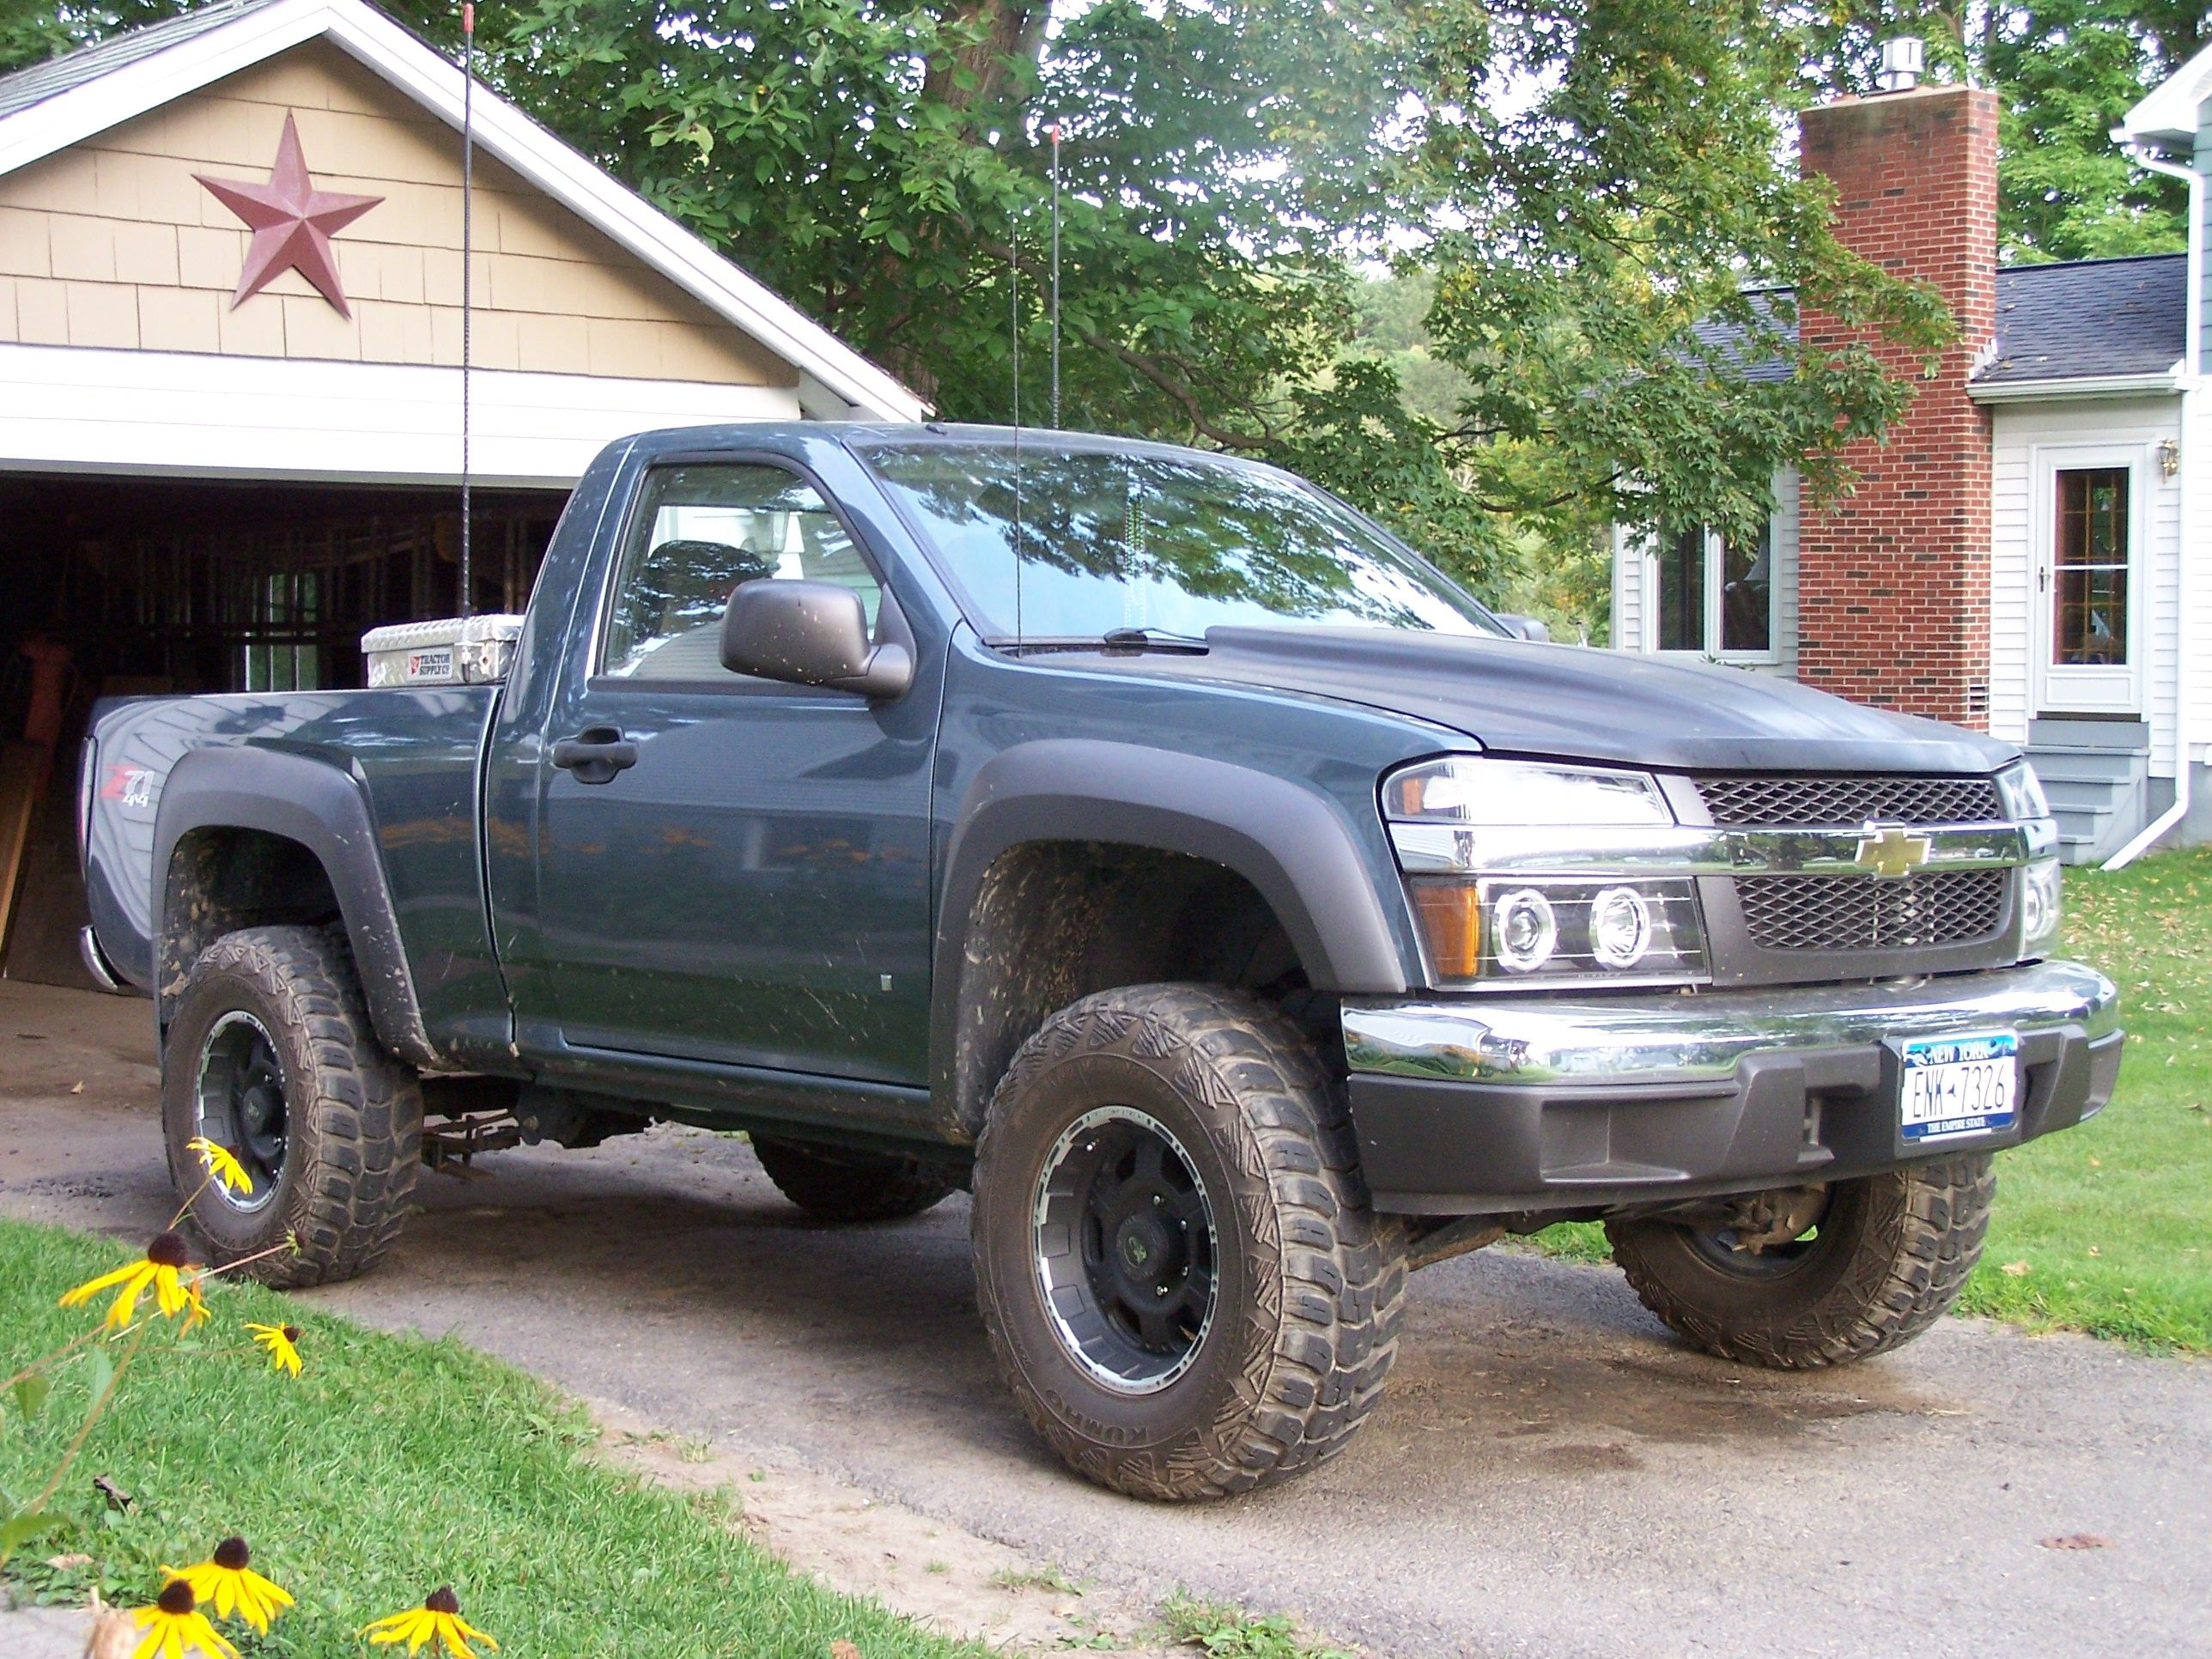 Countryboy212 S 2006 Chevrolet Colorado Regular Cab In Chenango